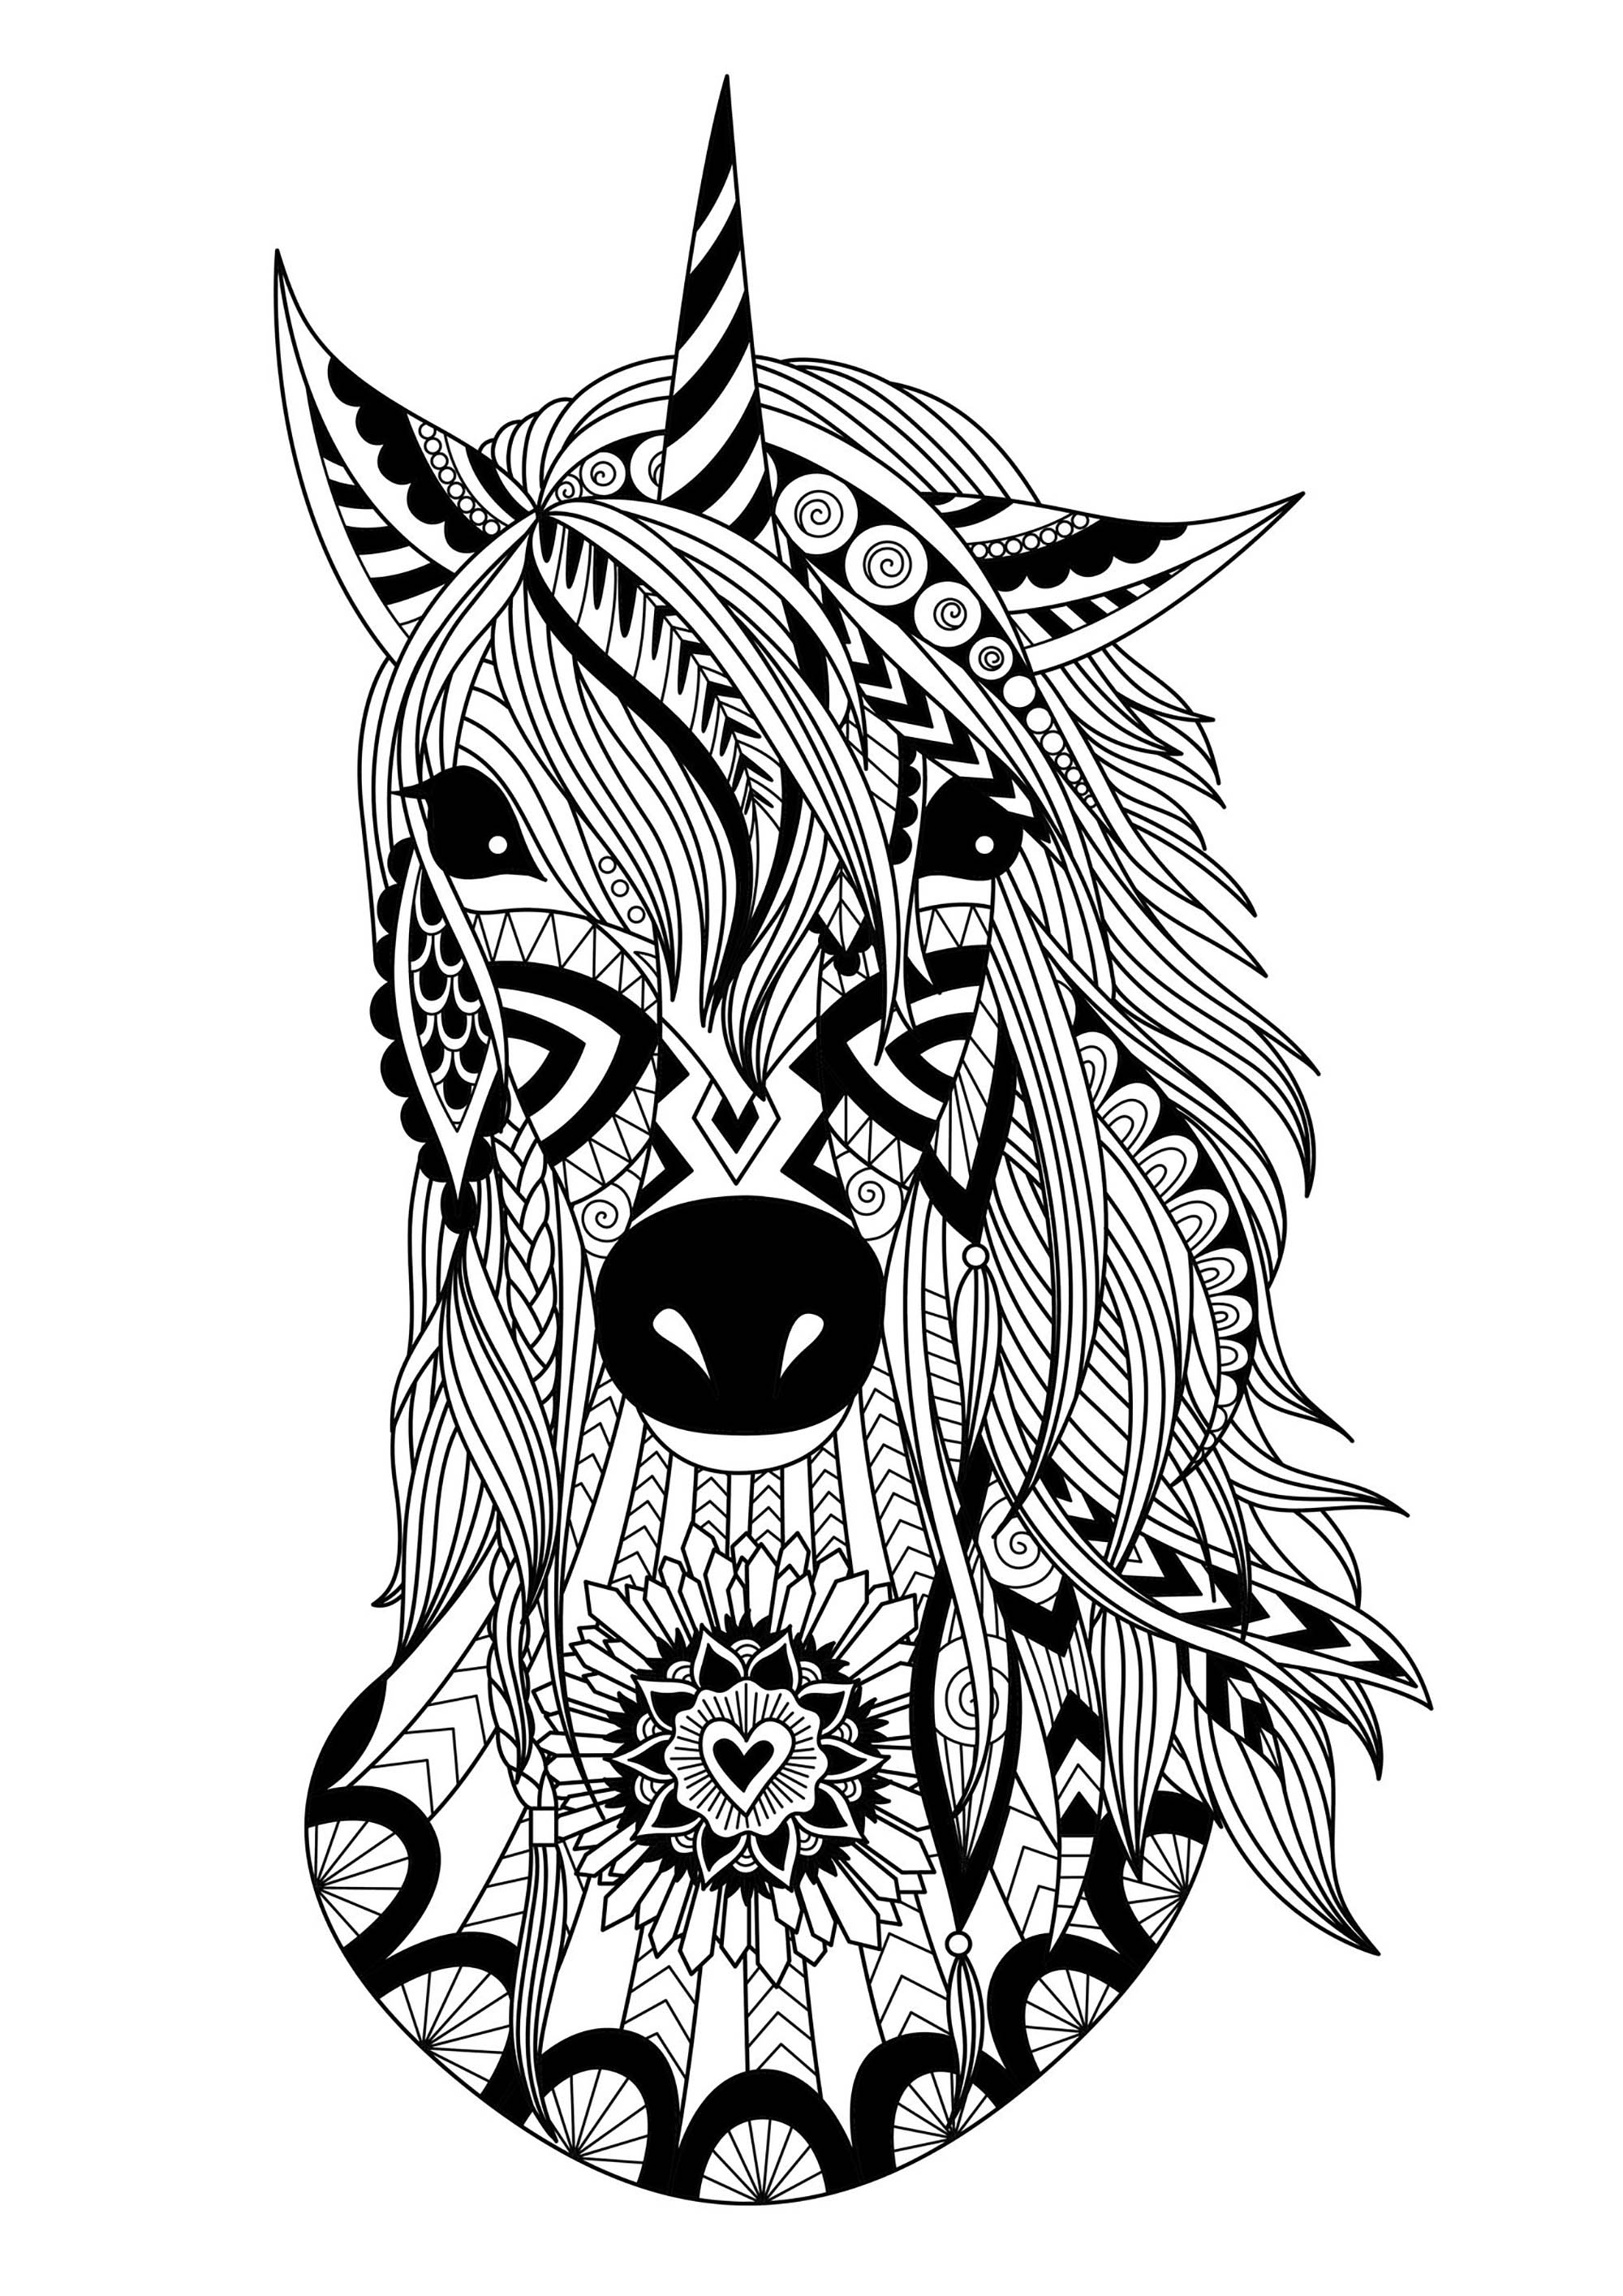 coloring for unicorn unicorn coloring page for kids stock illustration unicorn coloring for